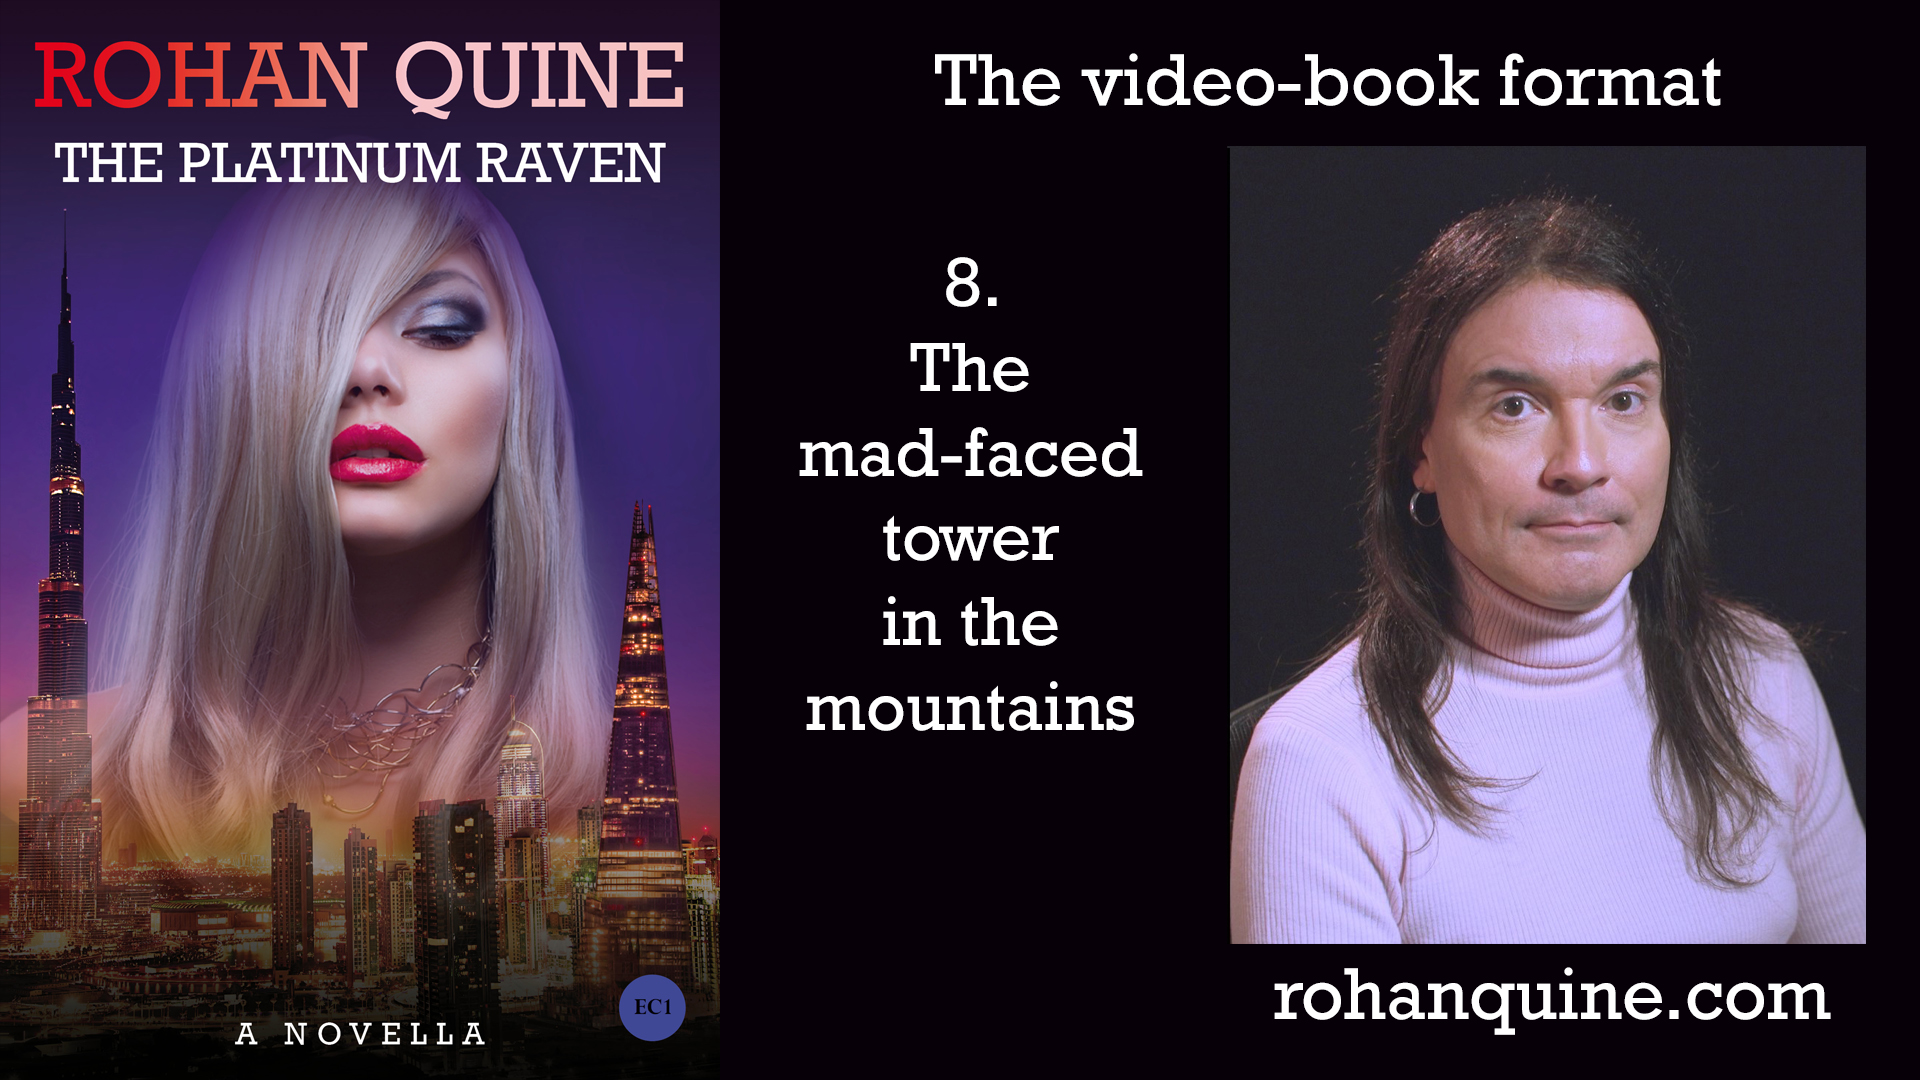 THE PLATINUM RAVEN by Rohan Quine - video-book format - chapter 8